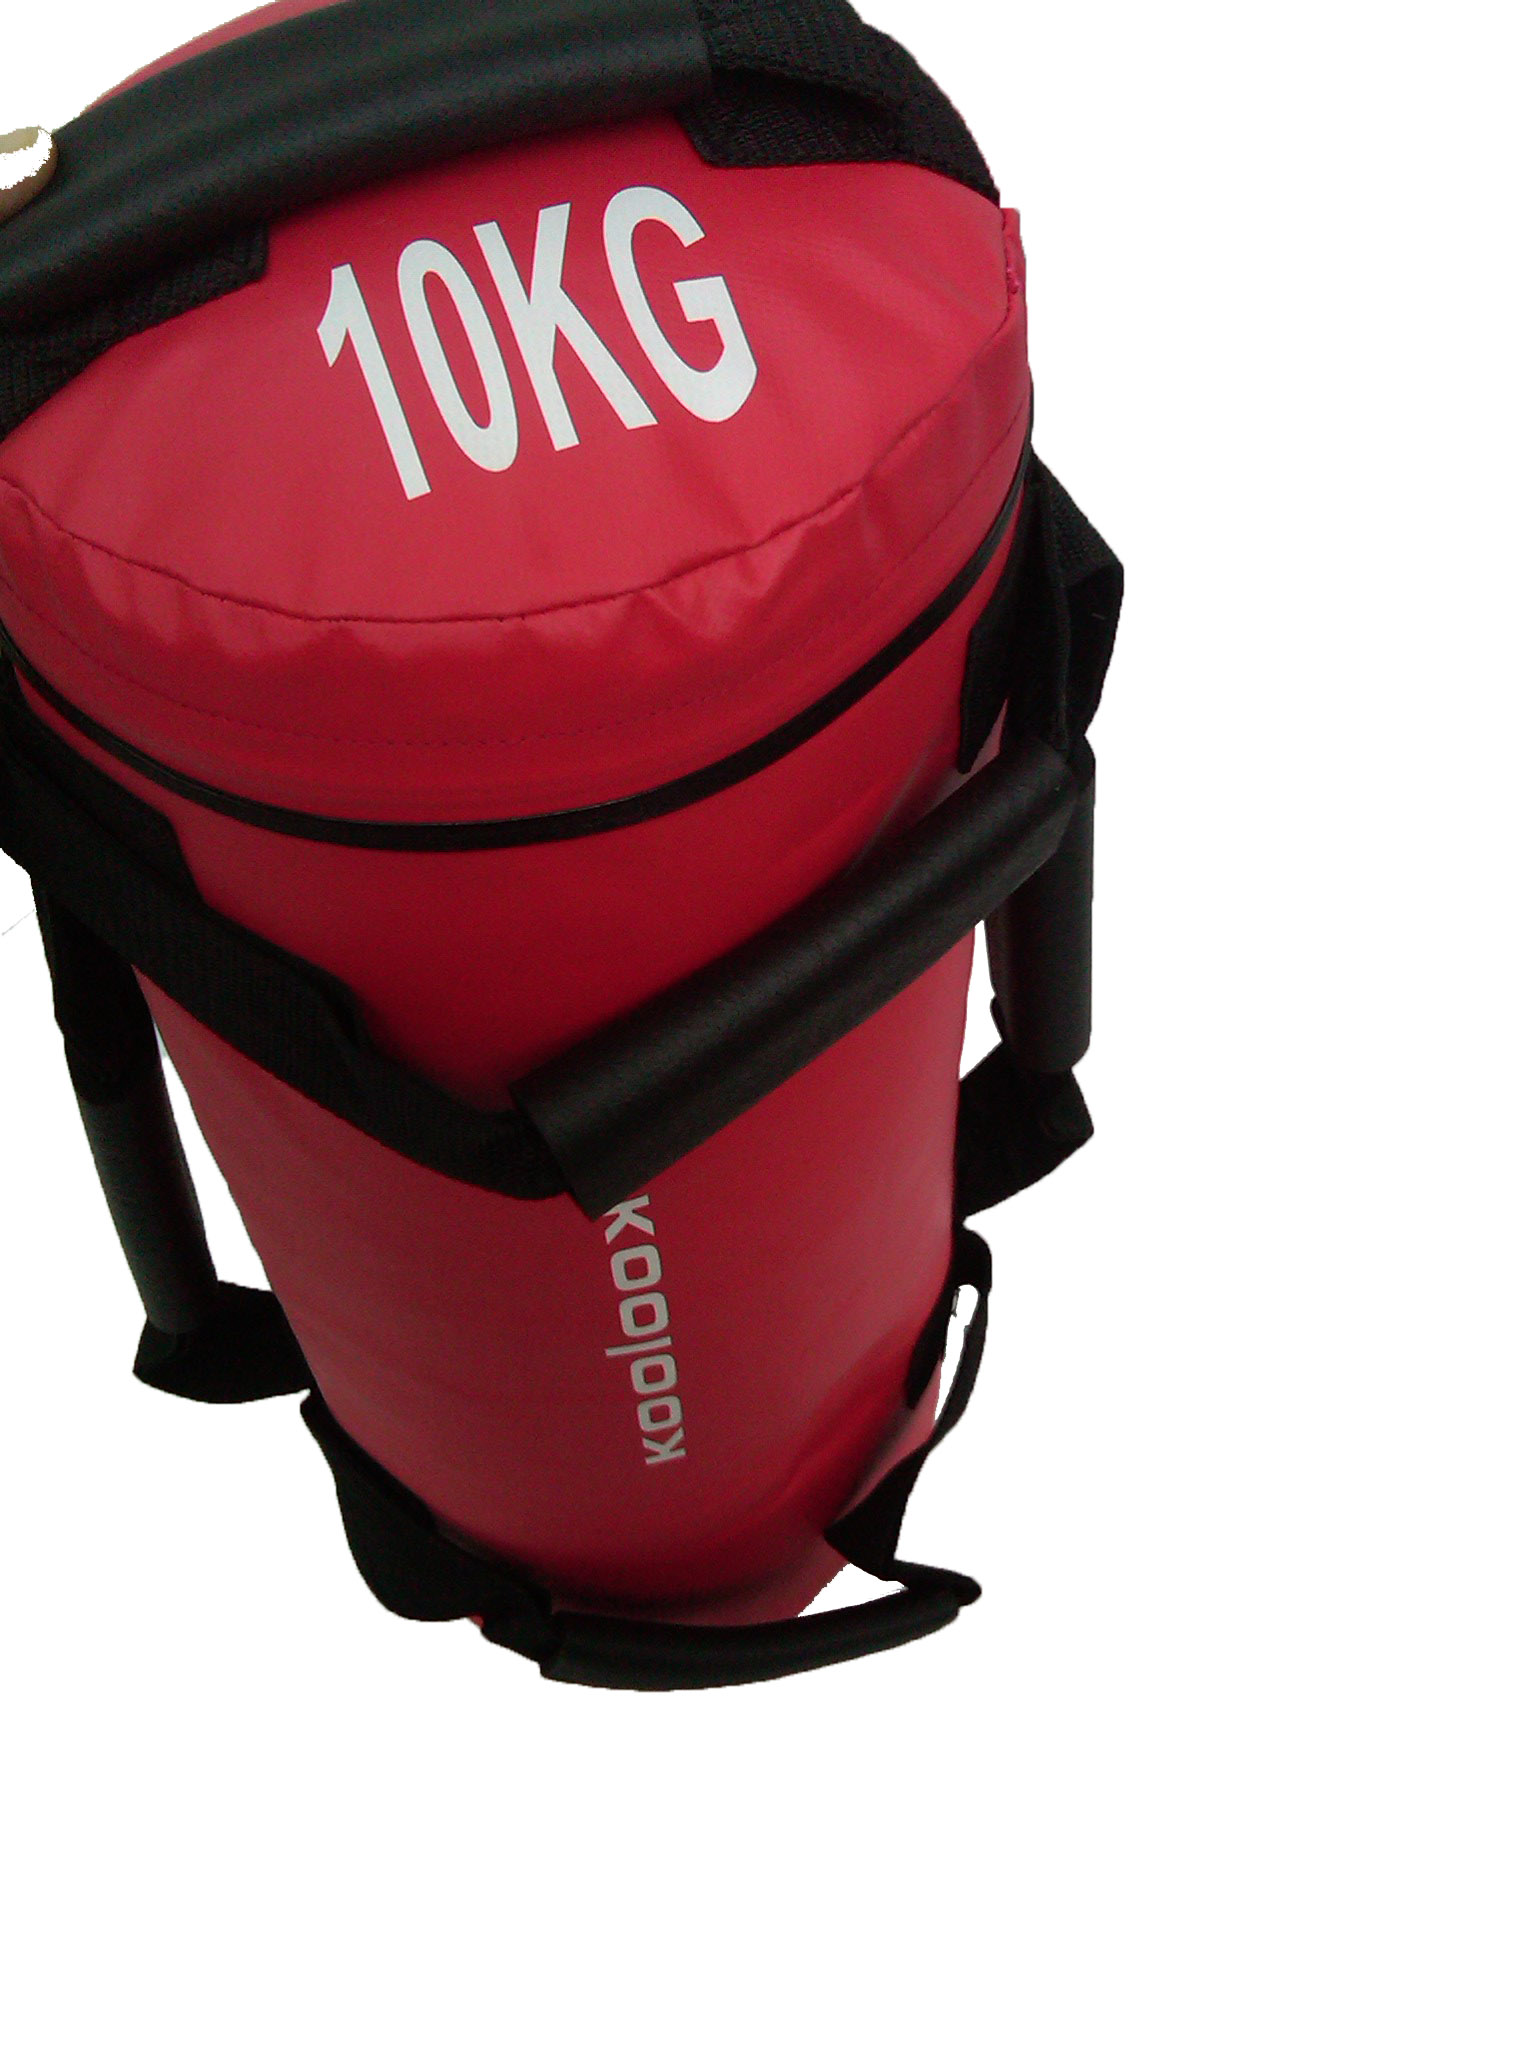 power bag rosso 10 kg